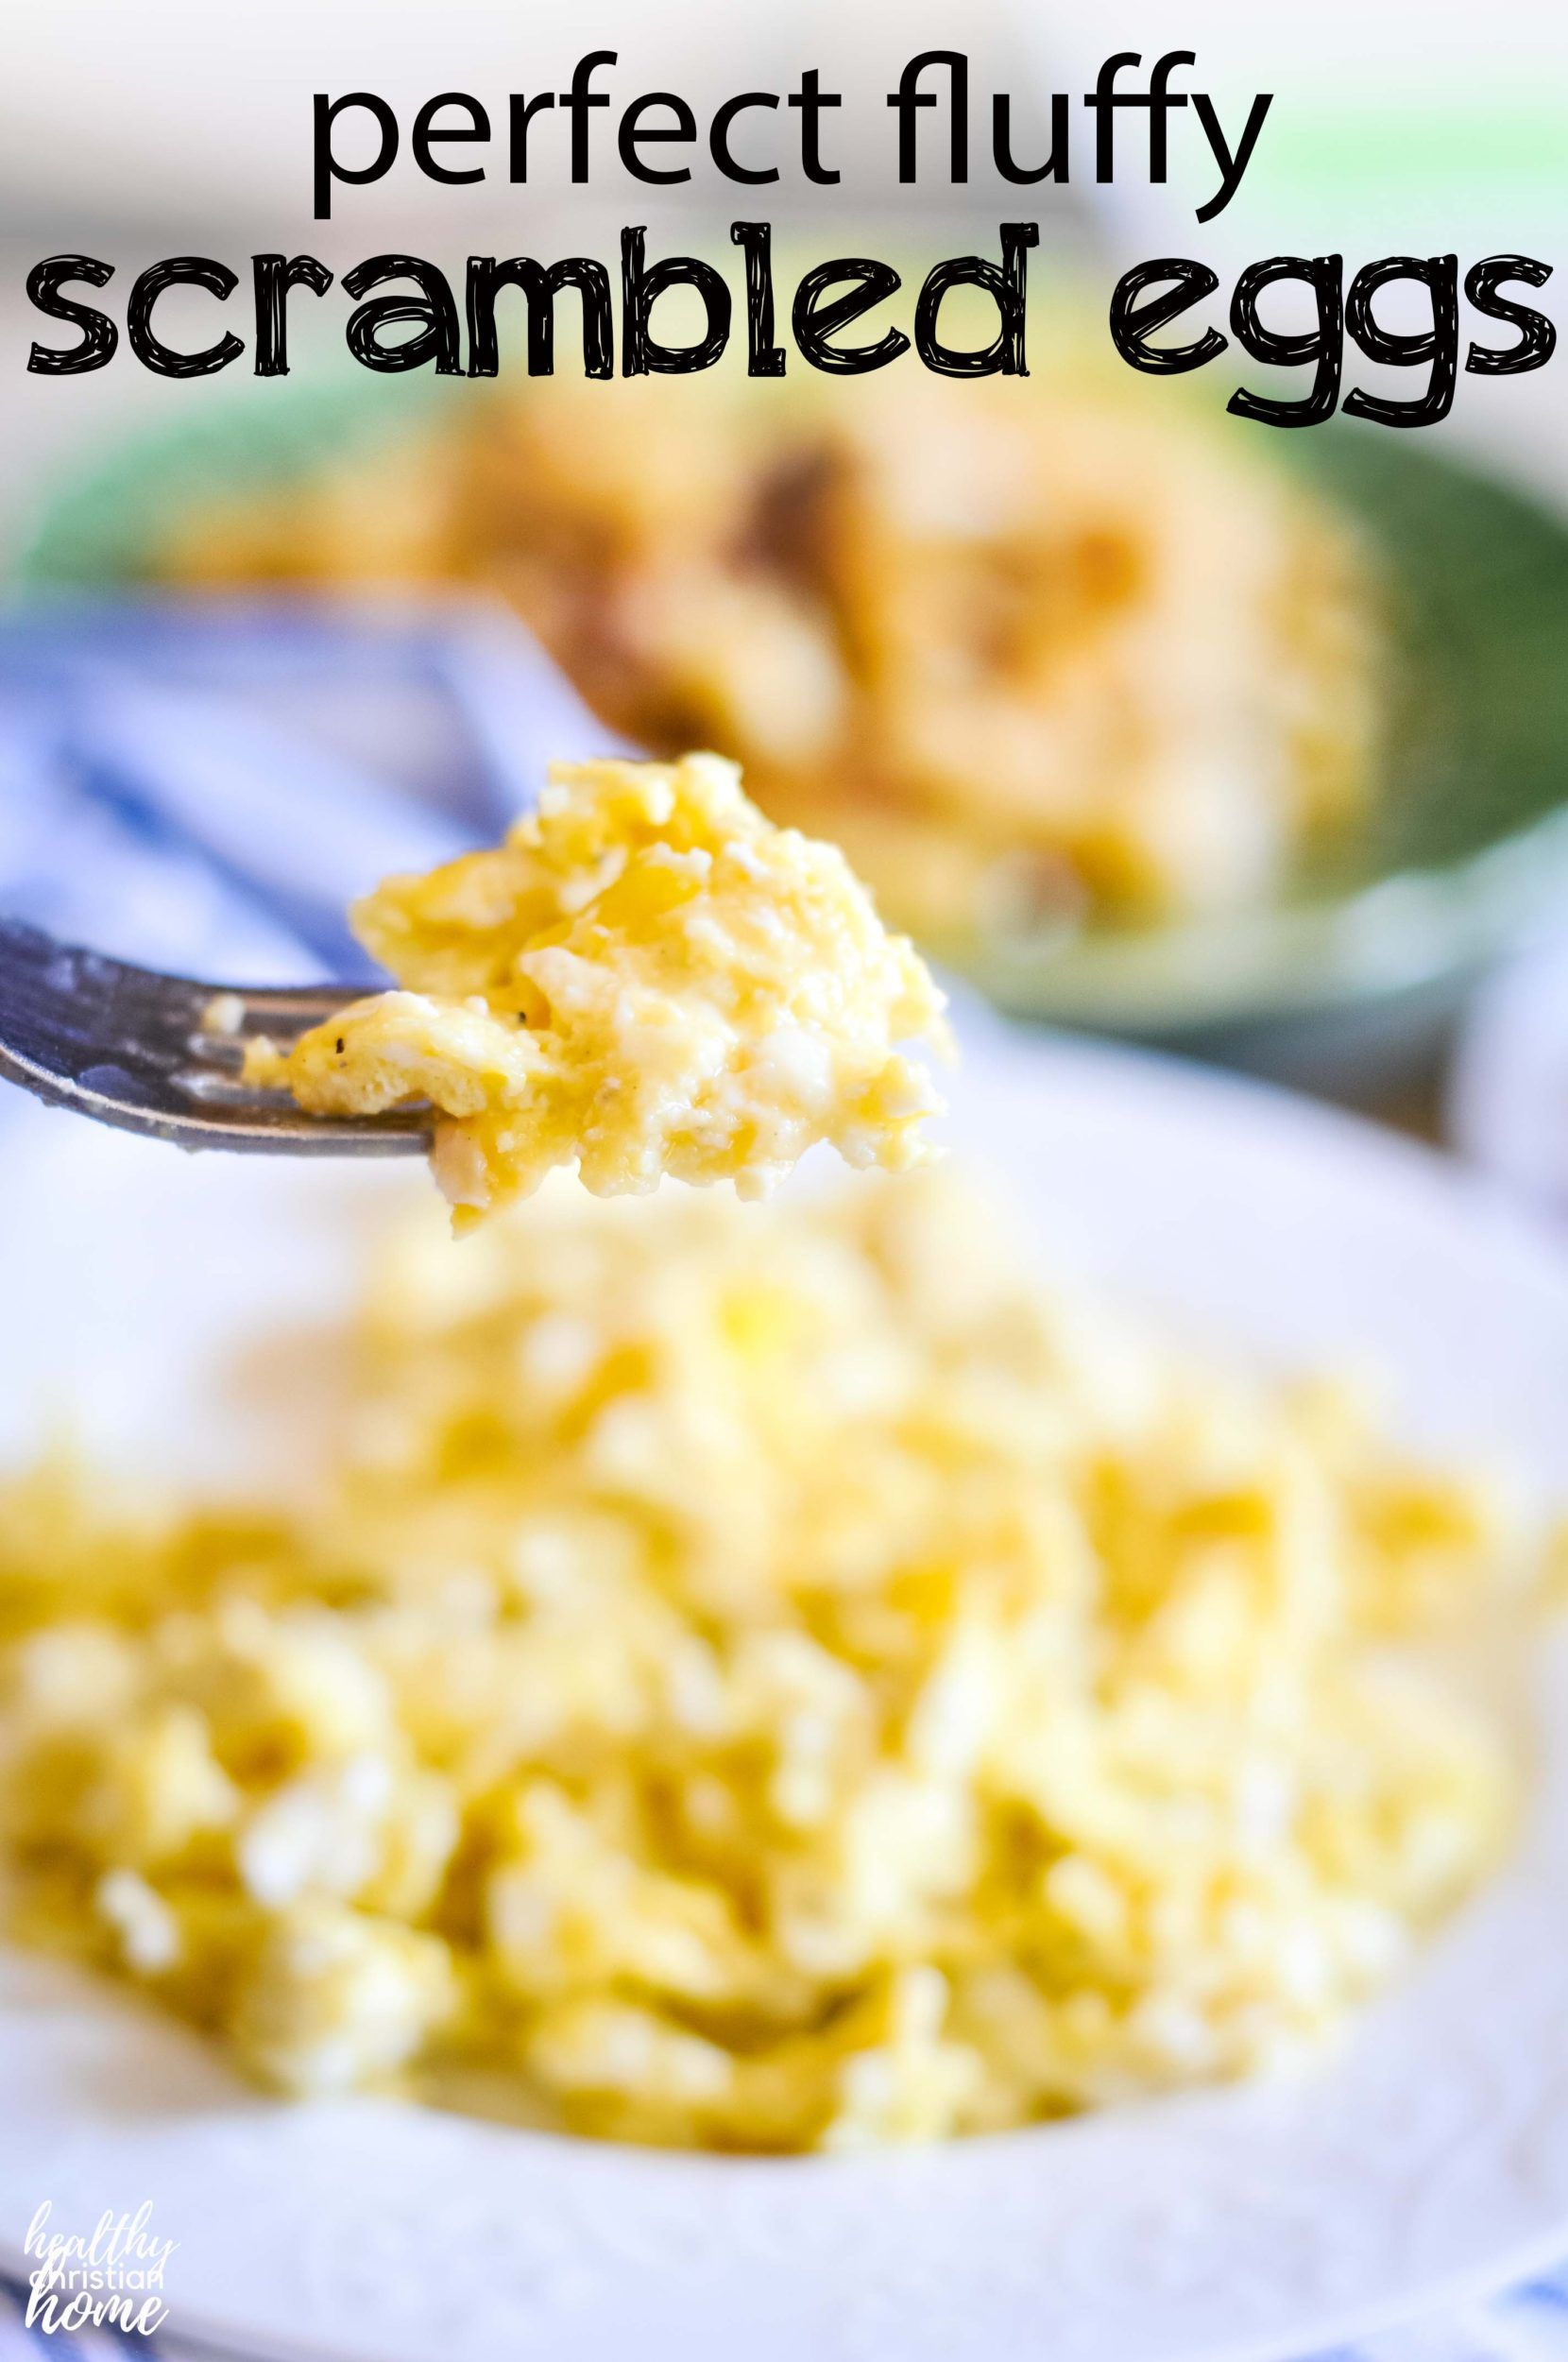 3 Secrets To Making Melt In Your Mouth Fluffy Scrambled Eggs Recipe Fluffy Scrambled Eggs Scrambled Eggs Recipe Scrambled Eggs Without Milk